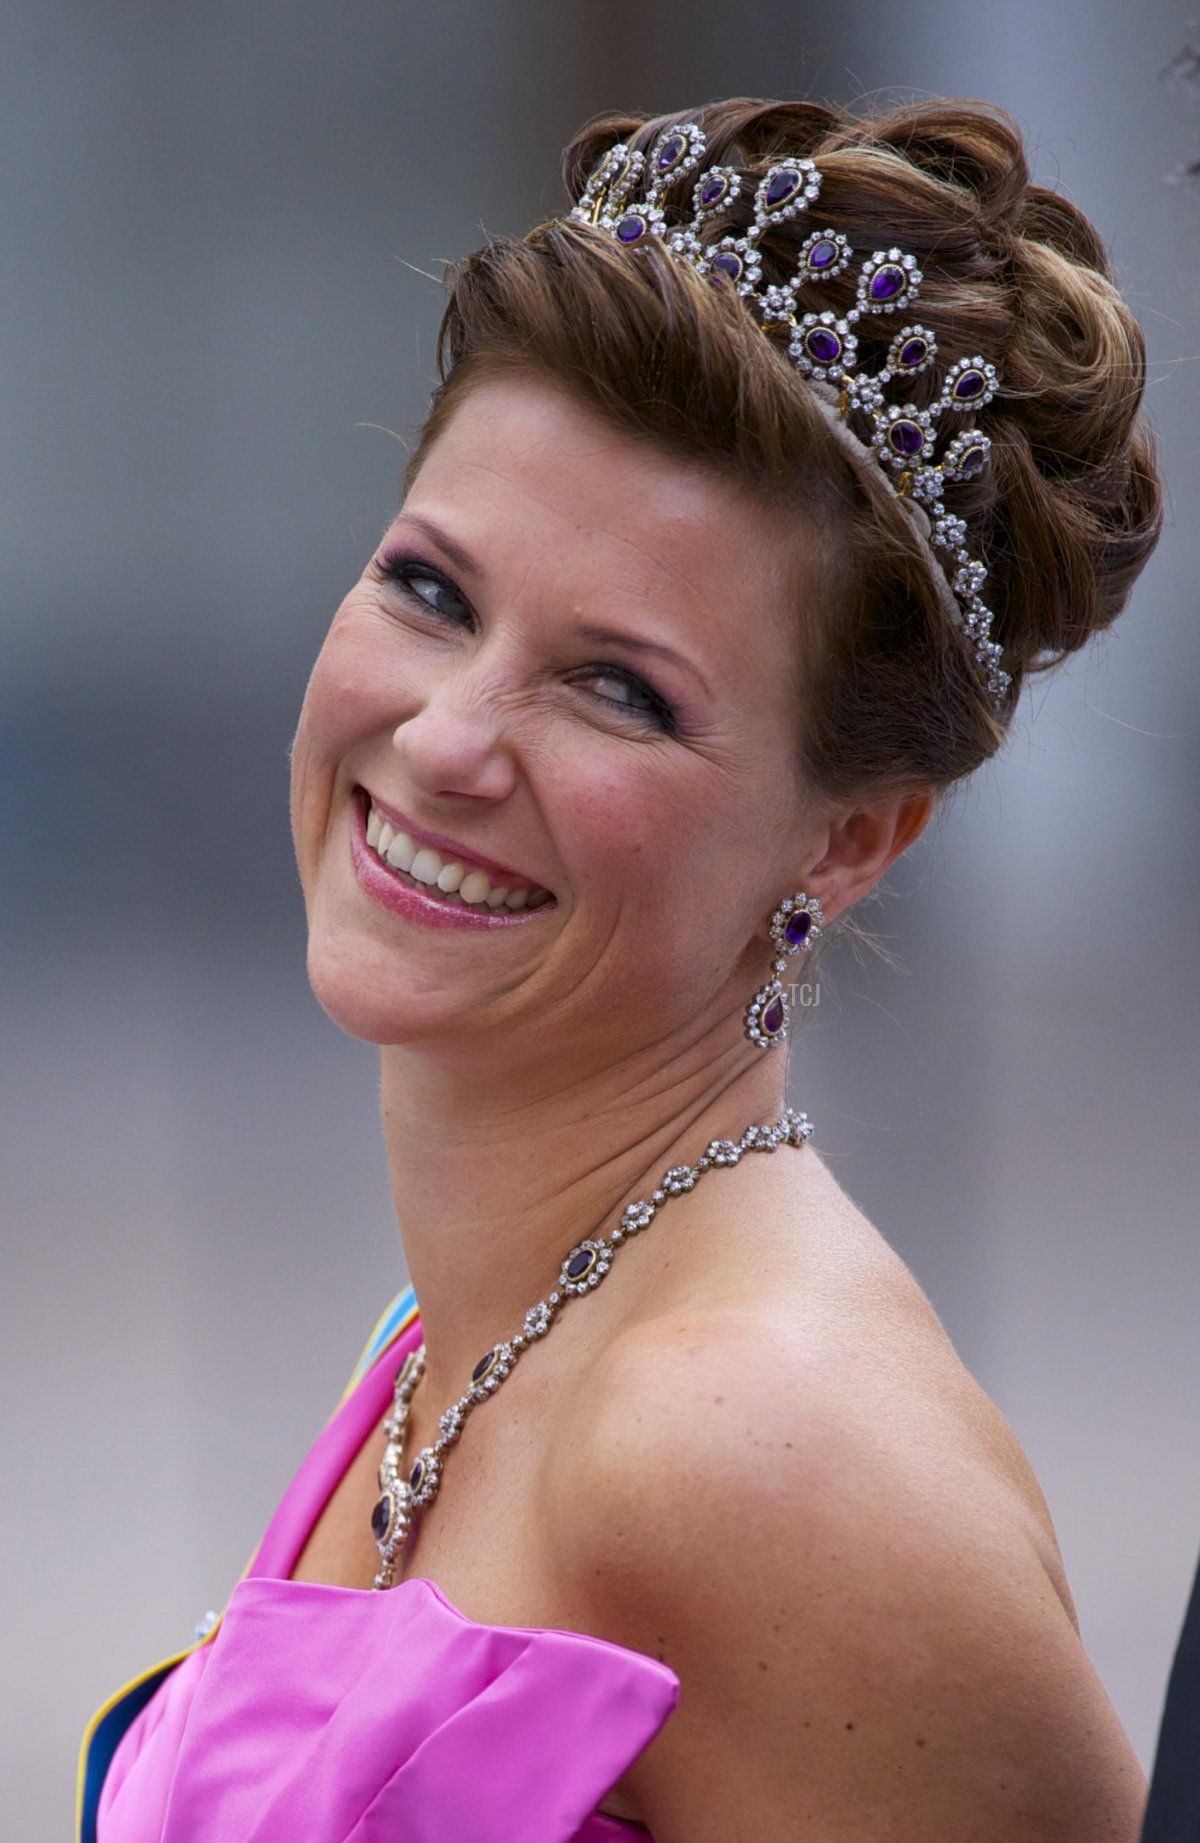 Princess Martha Louise of Norway and husband Mr Ari Behn attend the wedding of Crown Princess Victoria of Sweden and Daniel Westling on June 19, 2010 in Stockholm, Sweden